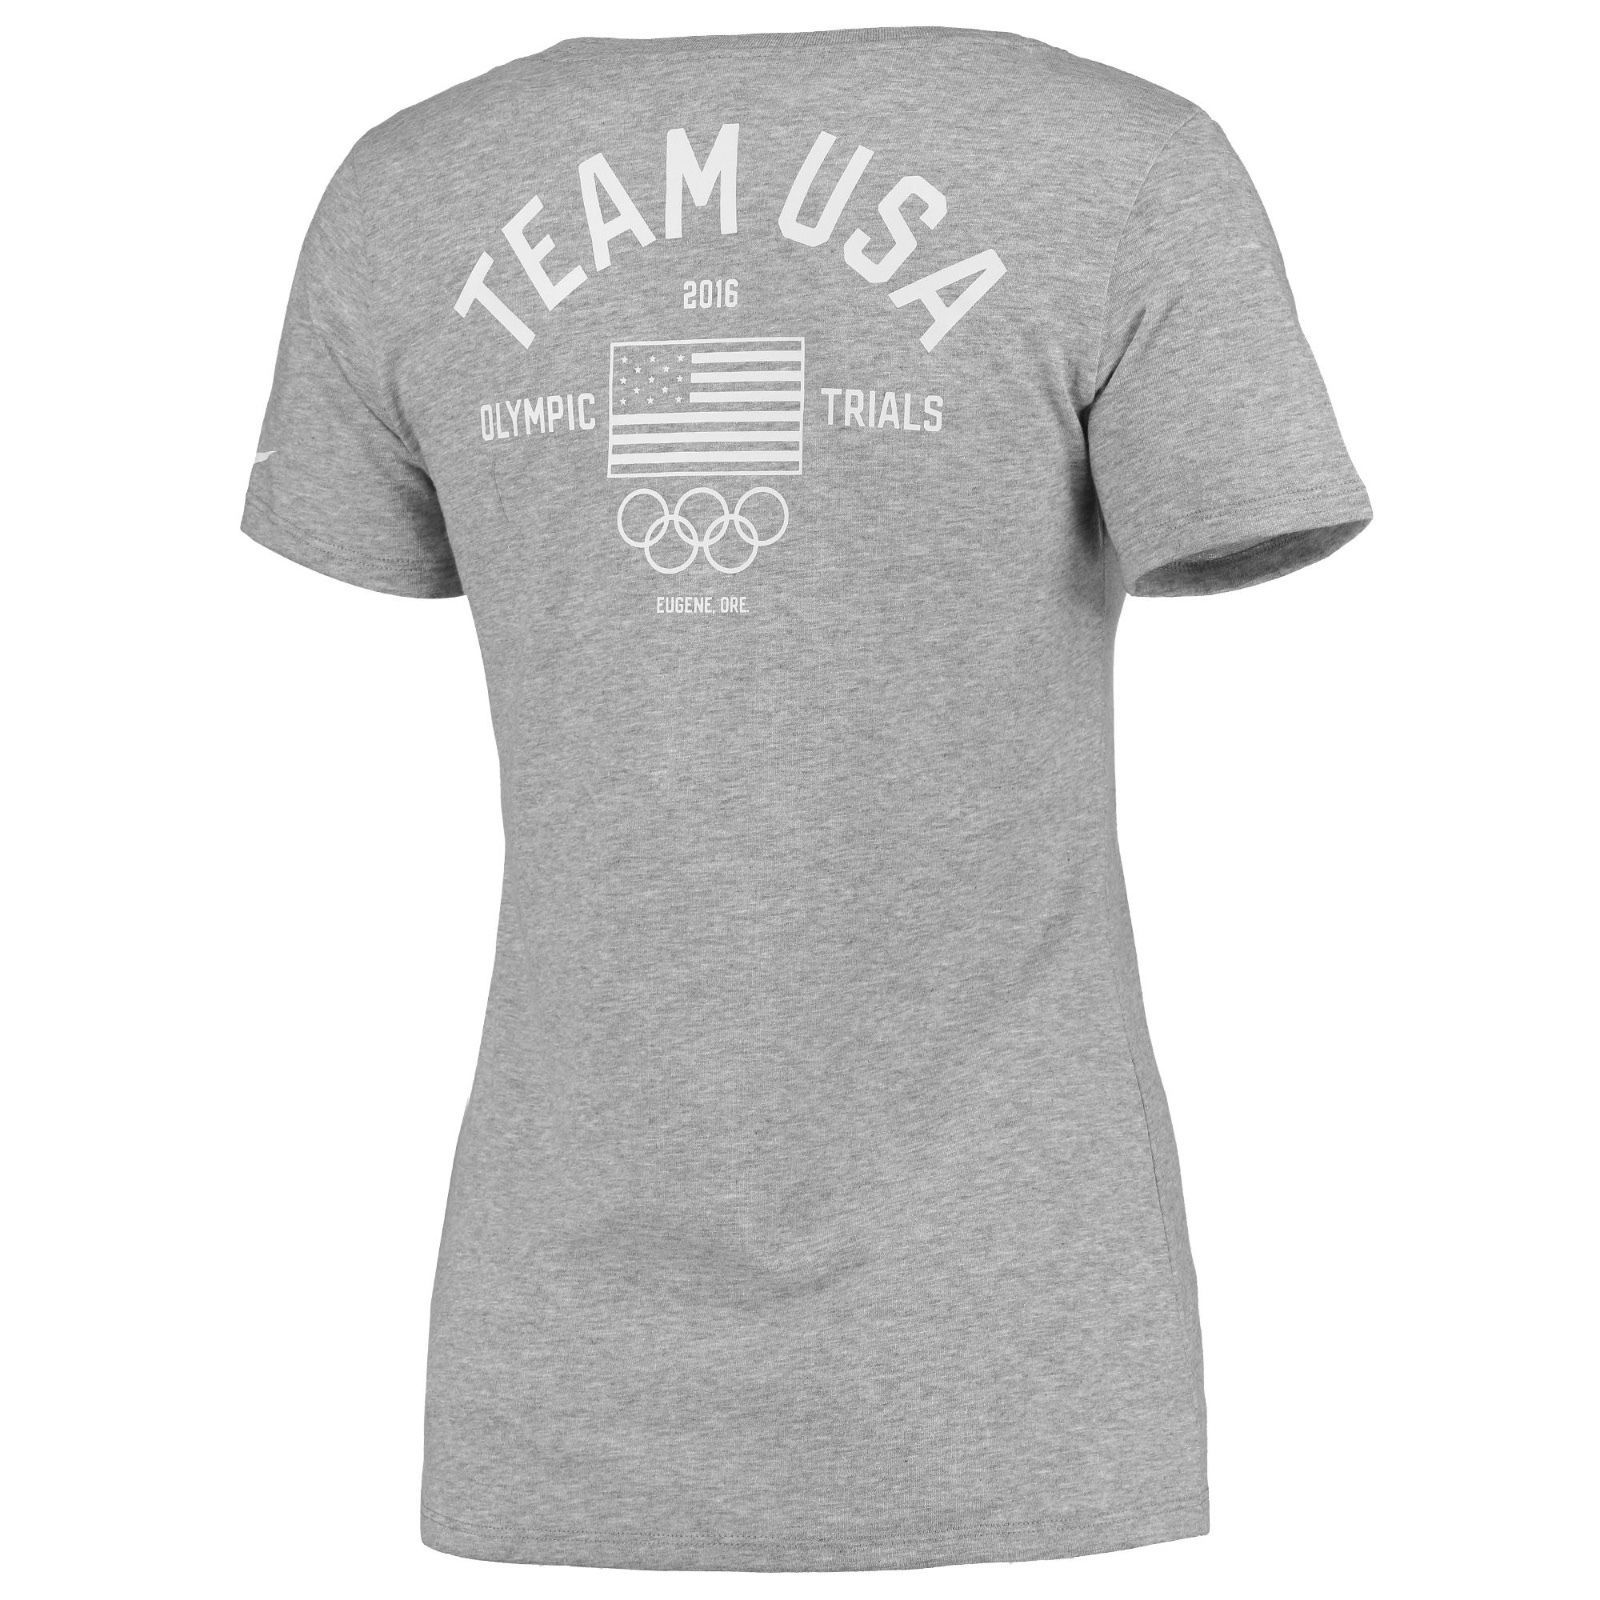 80cd2d77fe1e Nike Women s Xs Team Usa Olympic Trials Dry and 50 similar items